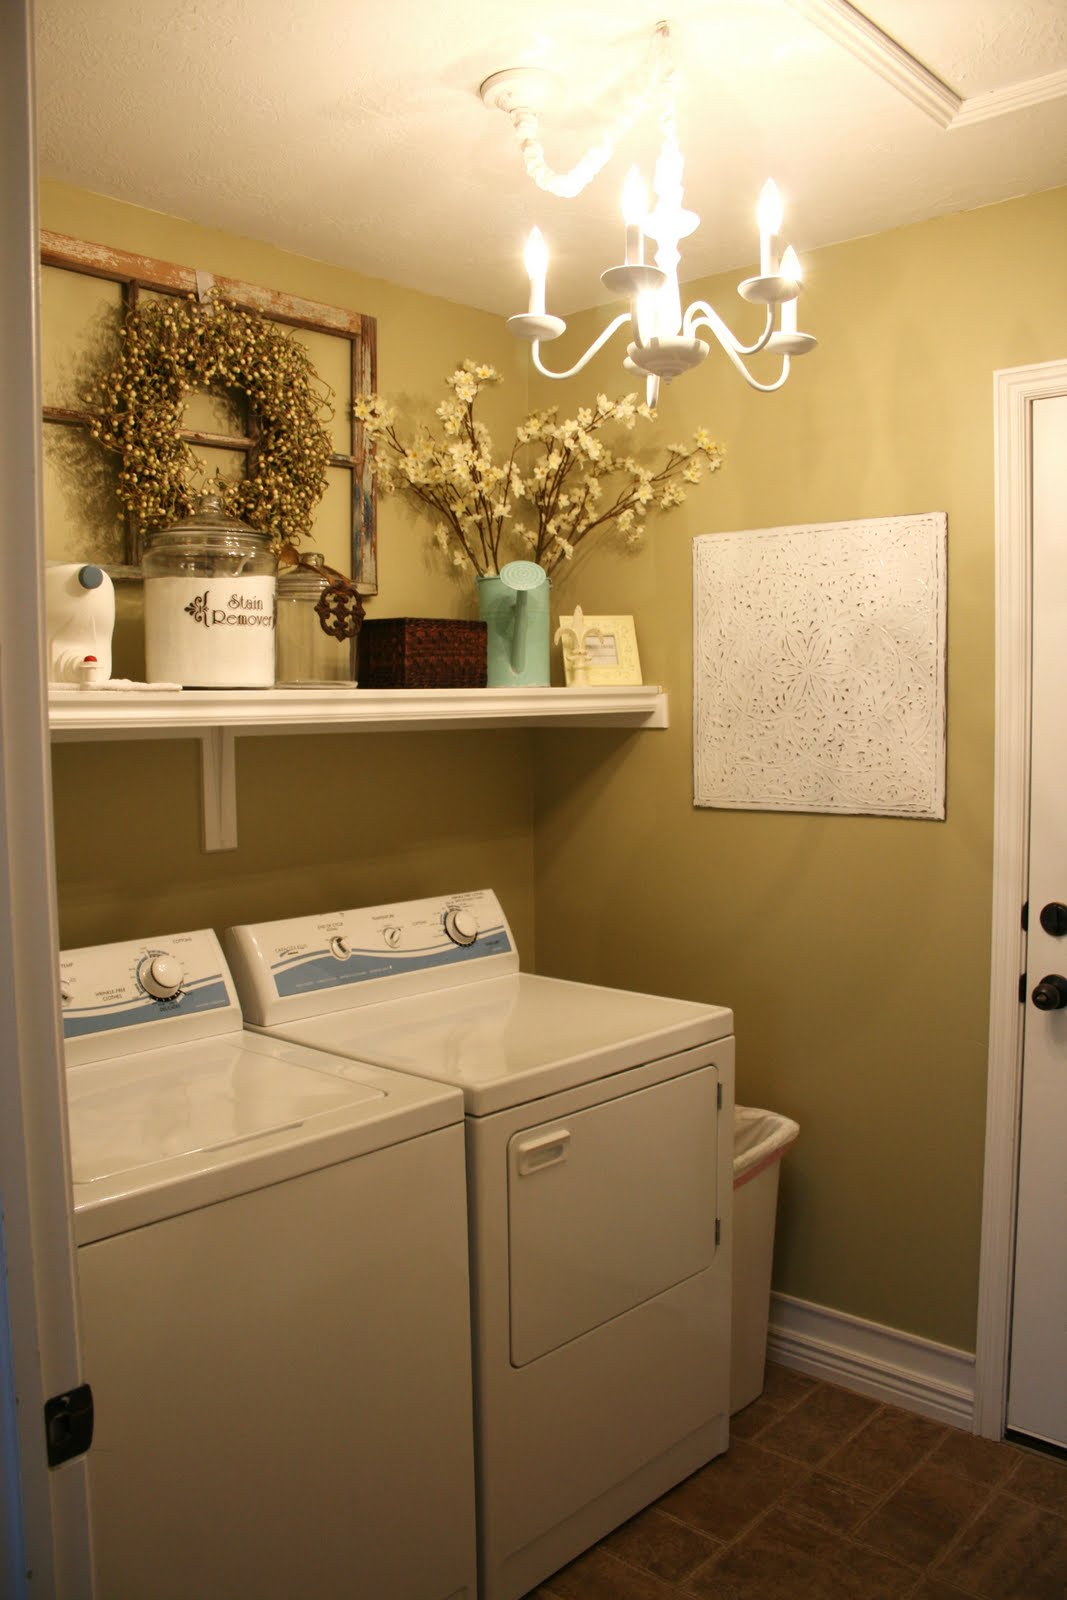 Sassy sites home tour the laundry room - Decorating laundry room ideas ...